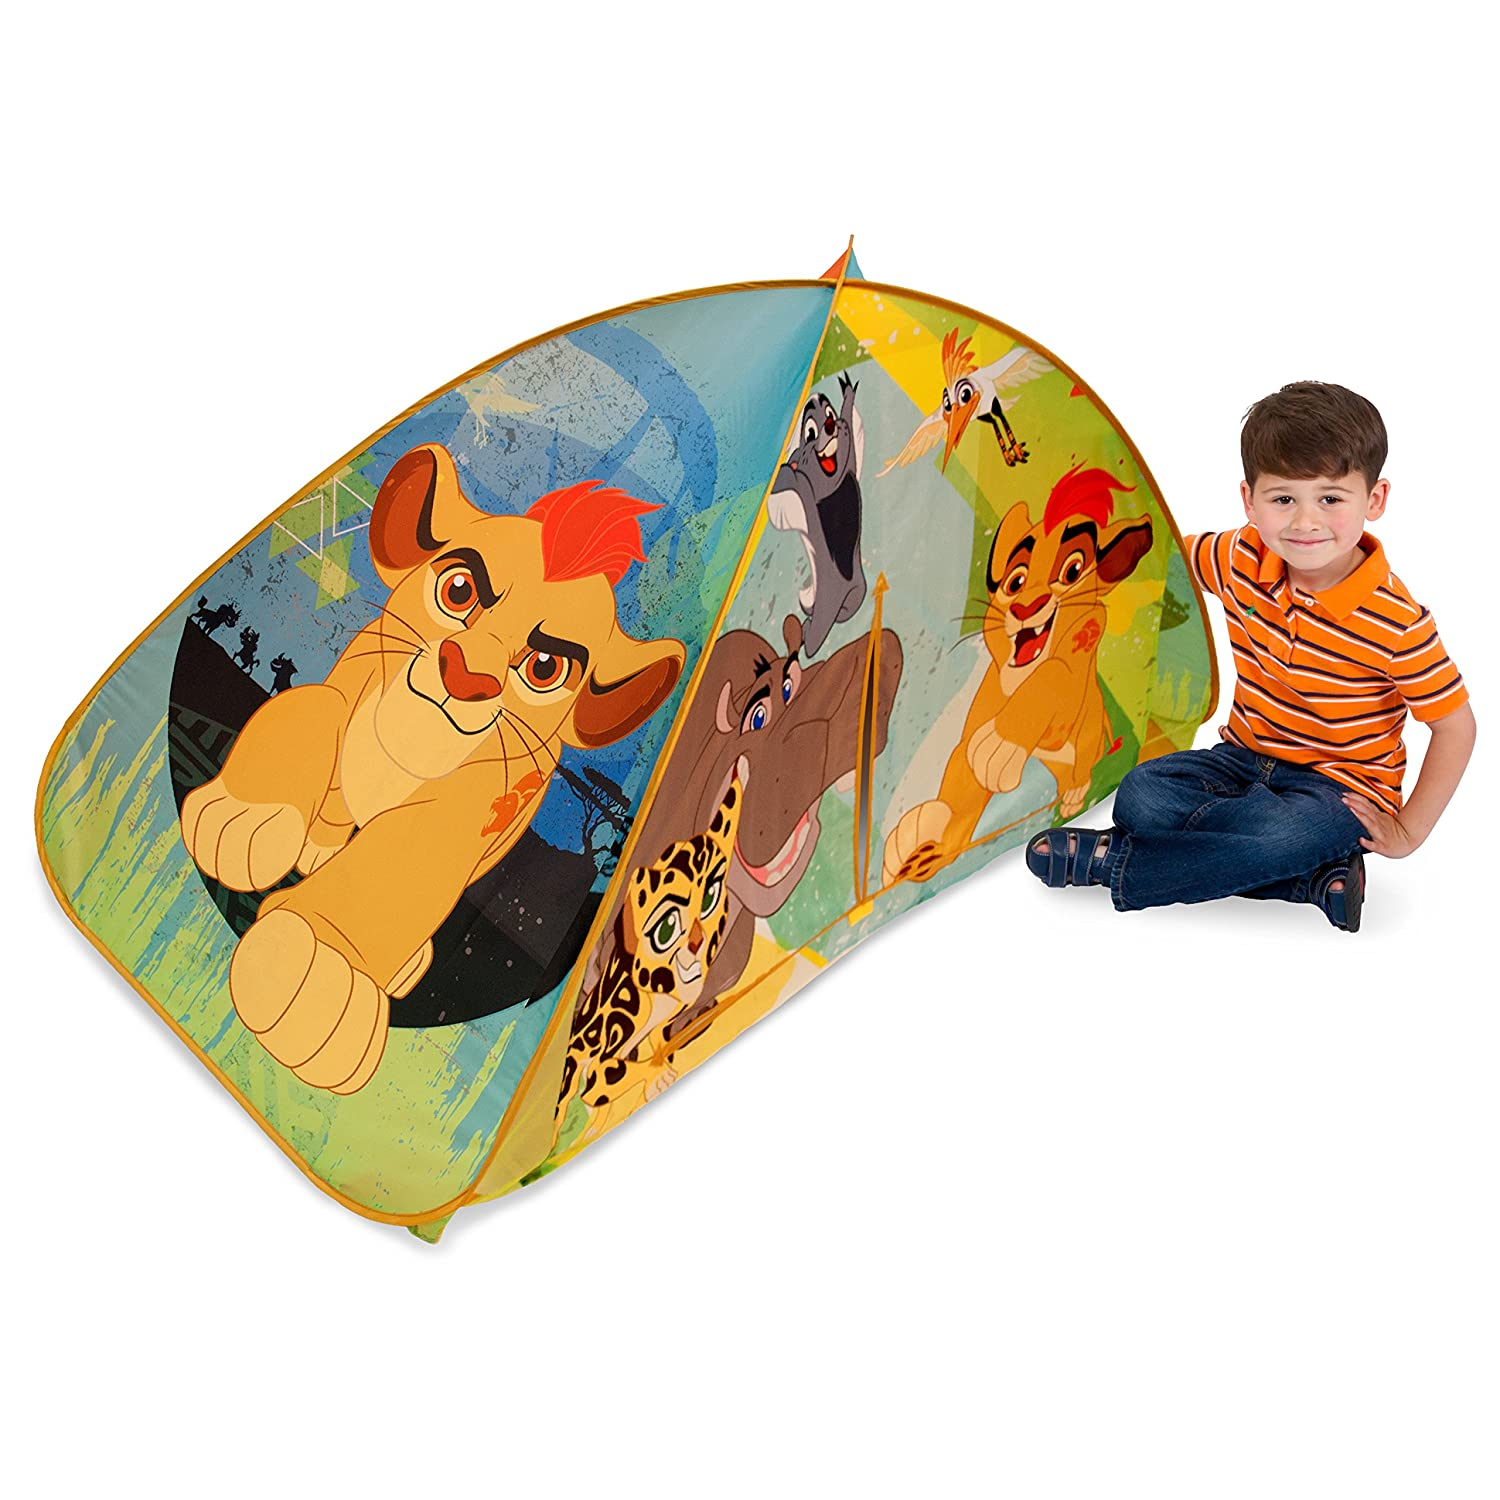 sc 1 st  Amazon.com & Amazon.com: Playhut Lion Guard 2-in-1 Bed Tent Green: Toys u0026 Games